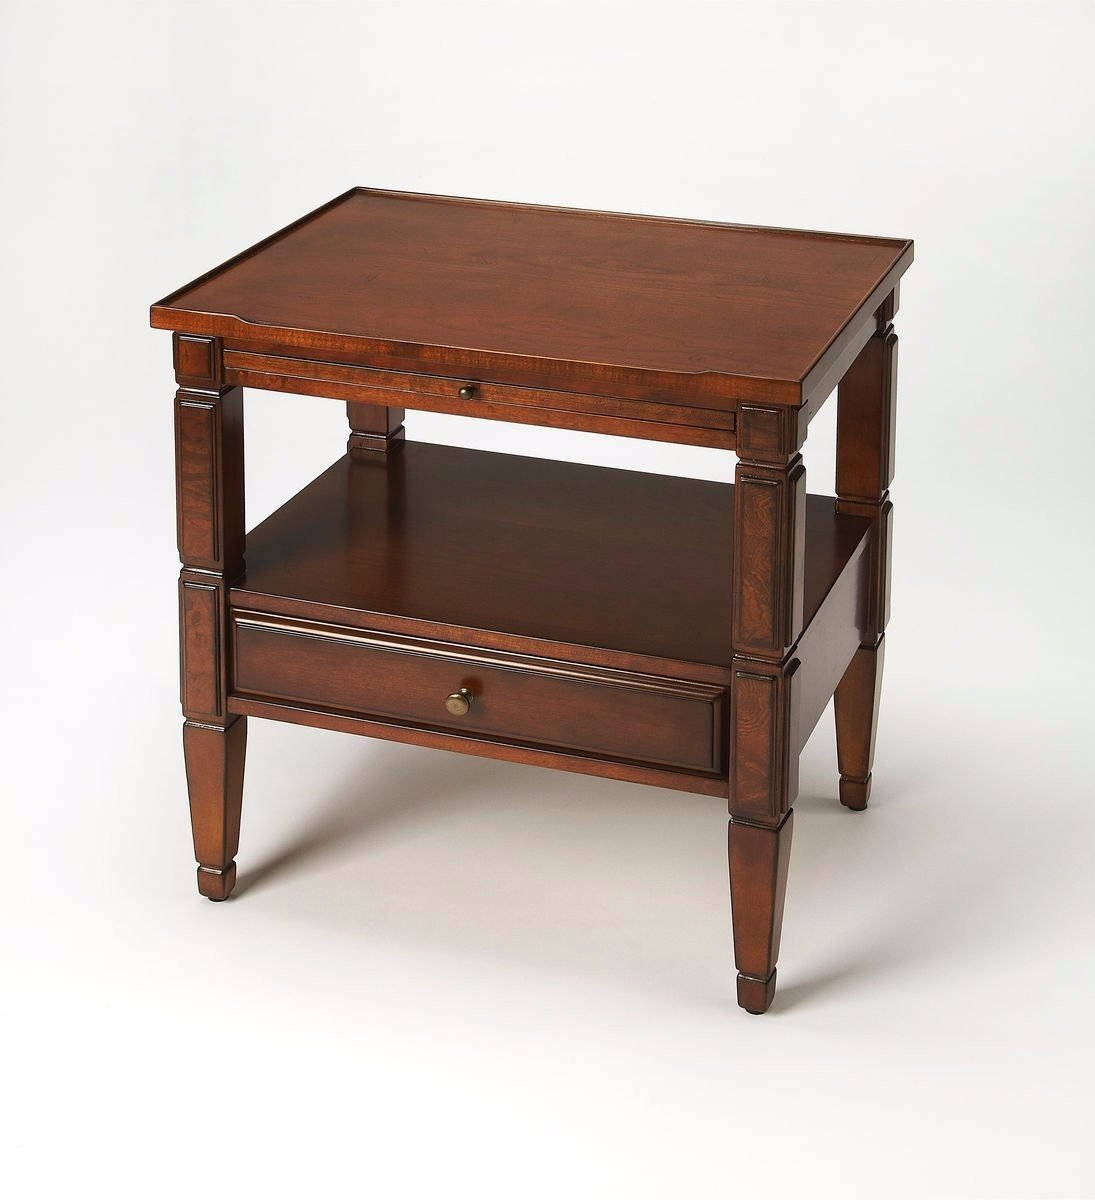 Ambiant Traditional ACCENT TABLE Medium Brown by Ambiant